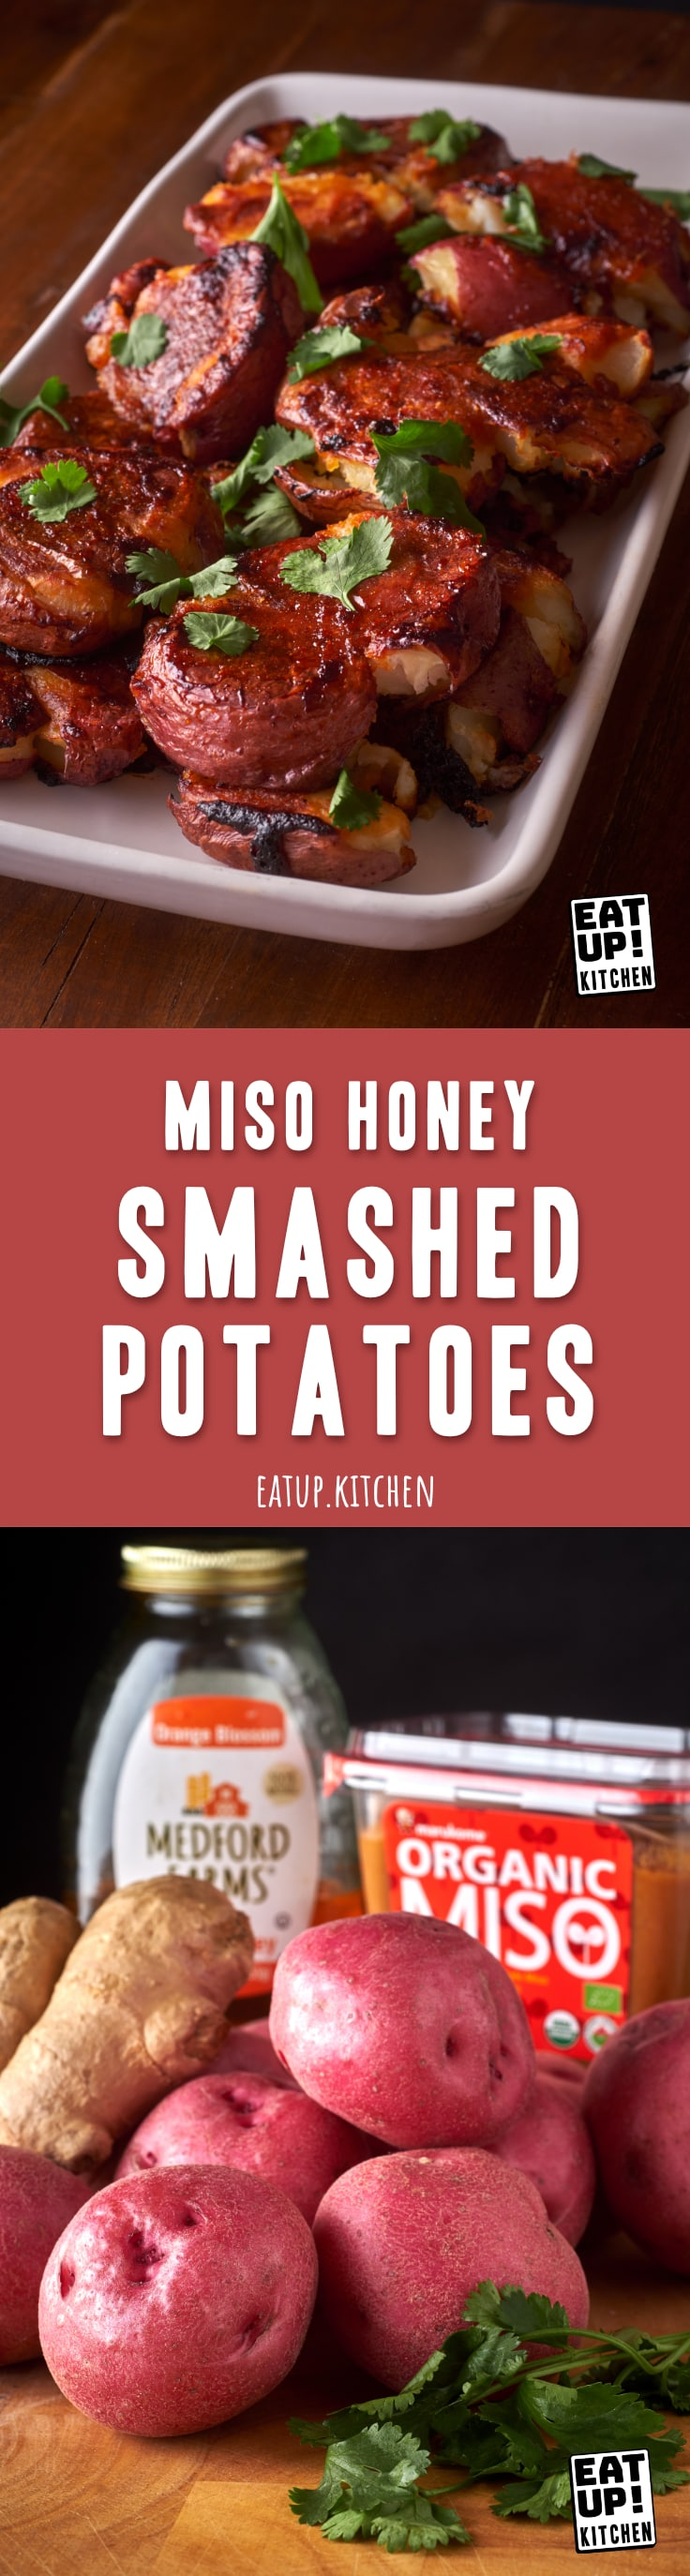 Miso Honey Smashed Potatoes